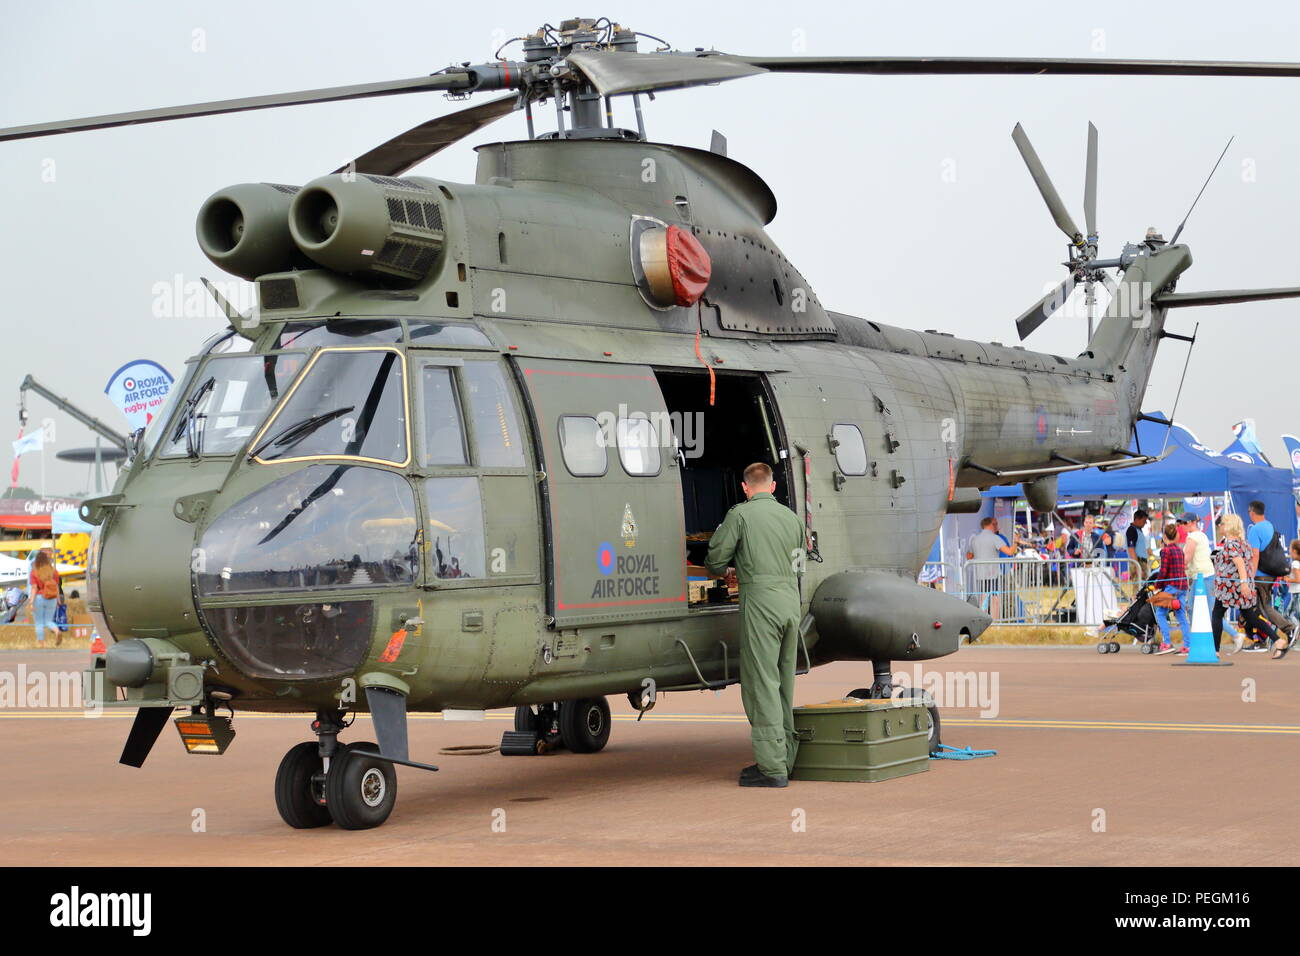 An Aerospitale SA 330 Puma helicopterat the RIAT 2018 at RAF Fairford, UK - Stock Image